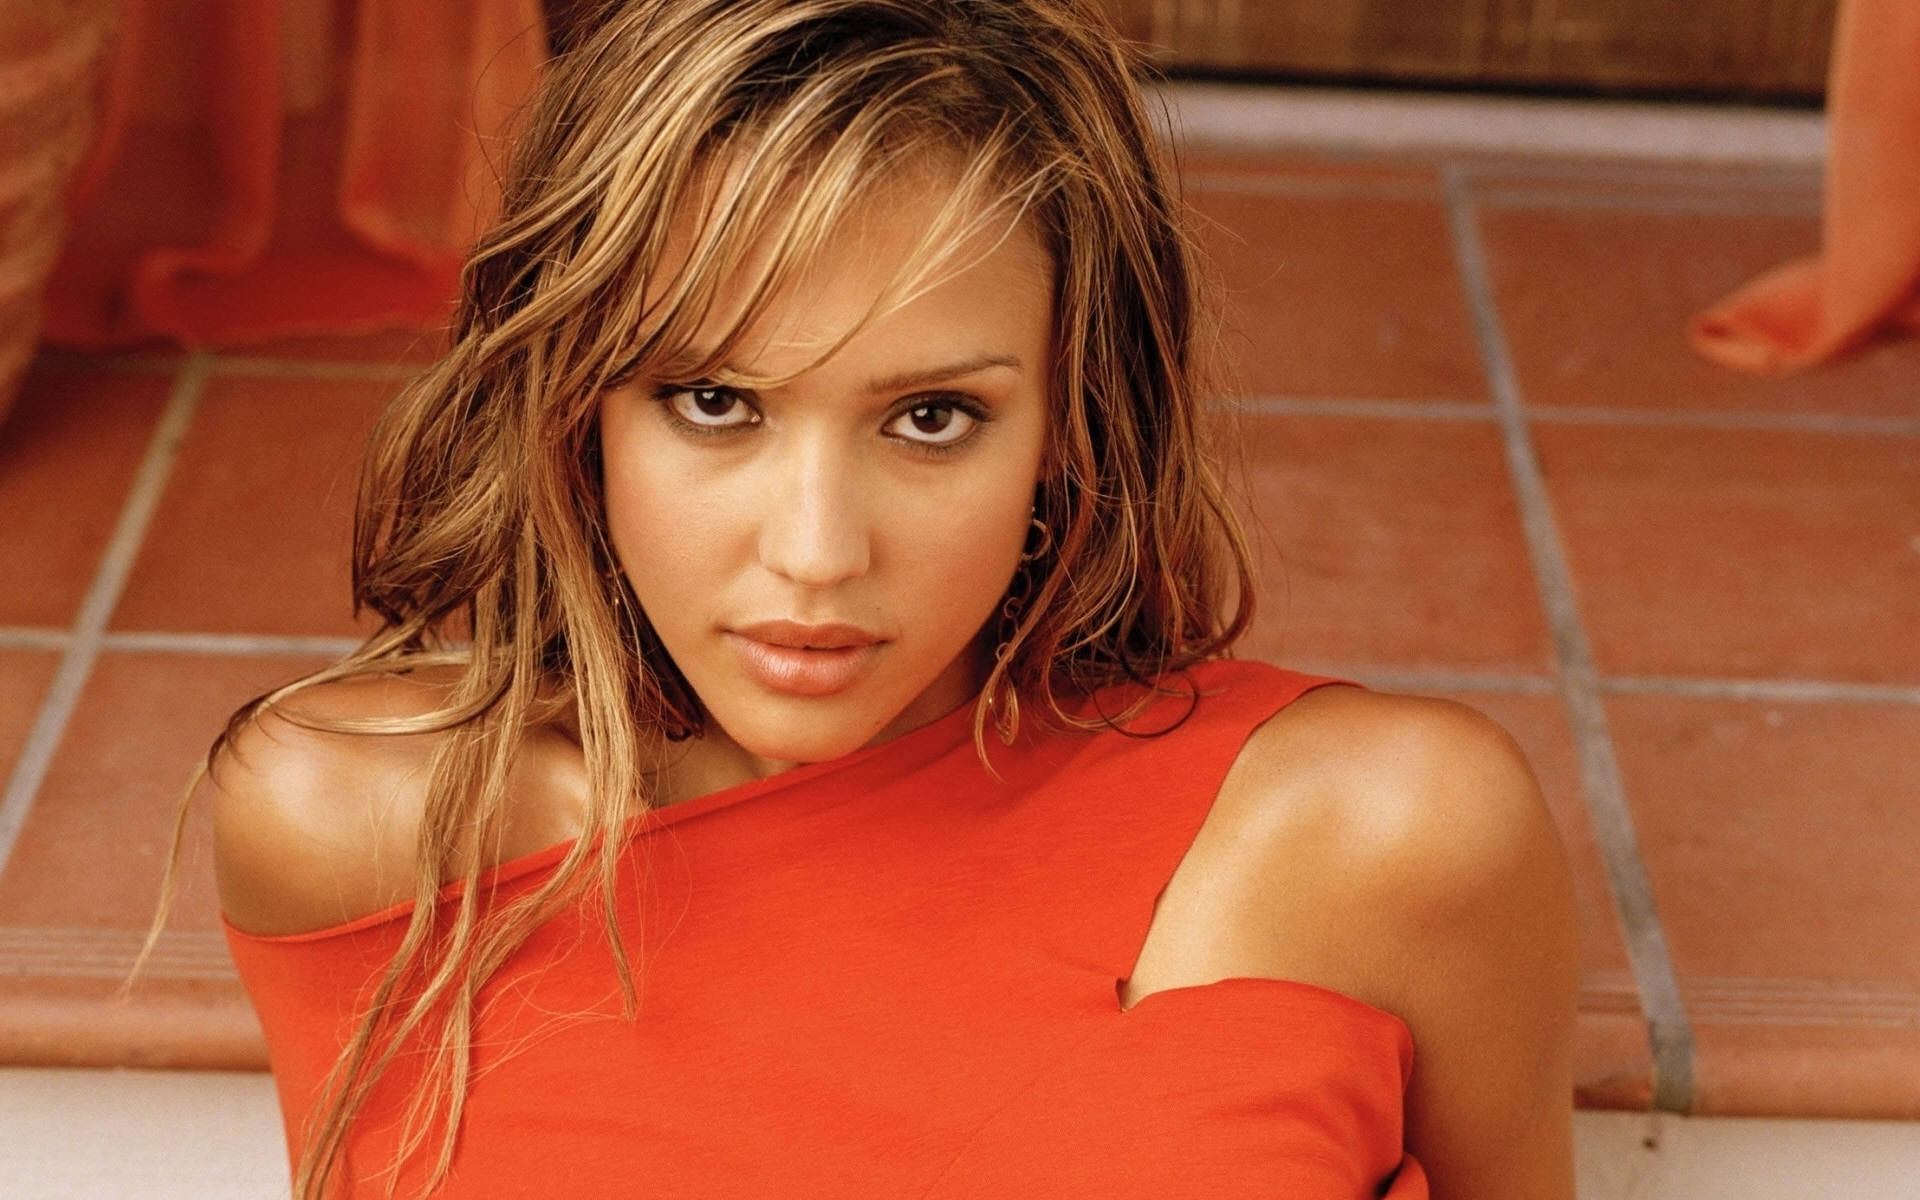 47365 download wallpaper People, Girls, Jessica Alba screensavers and pictures for free